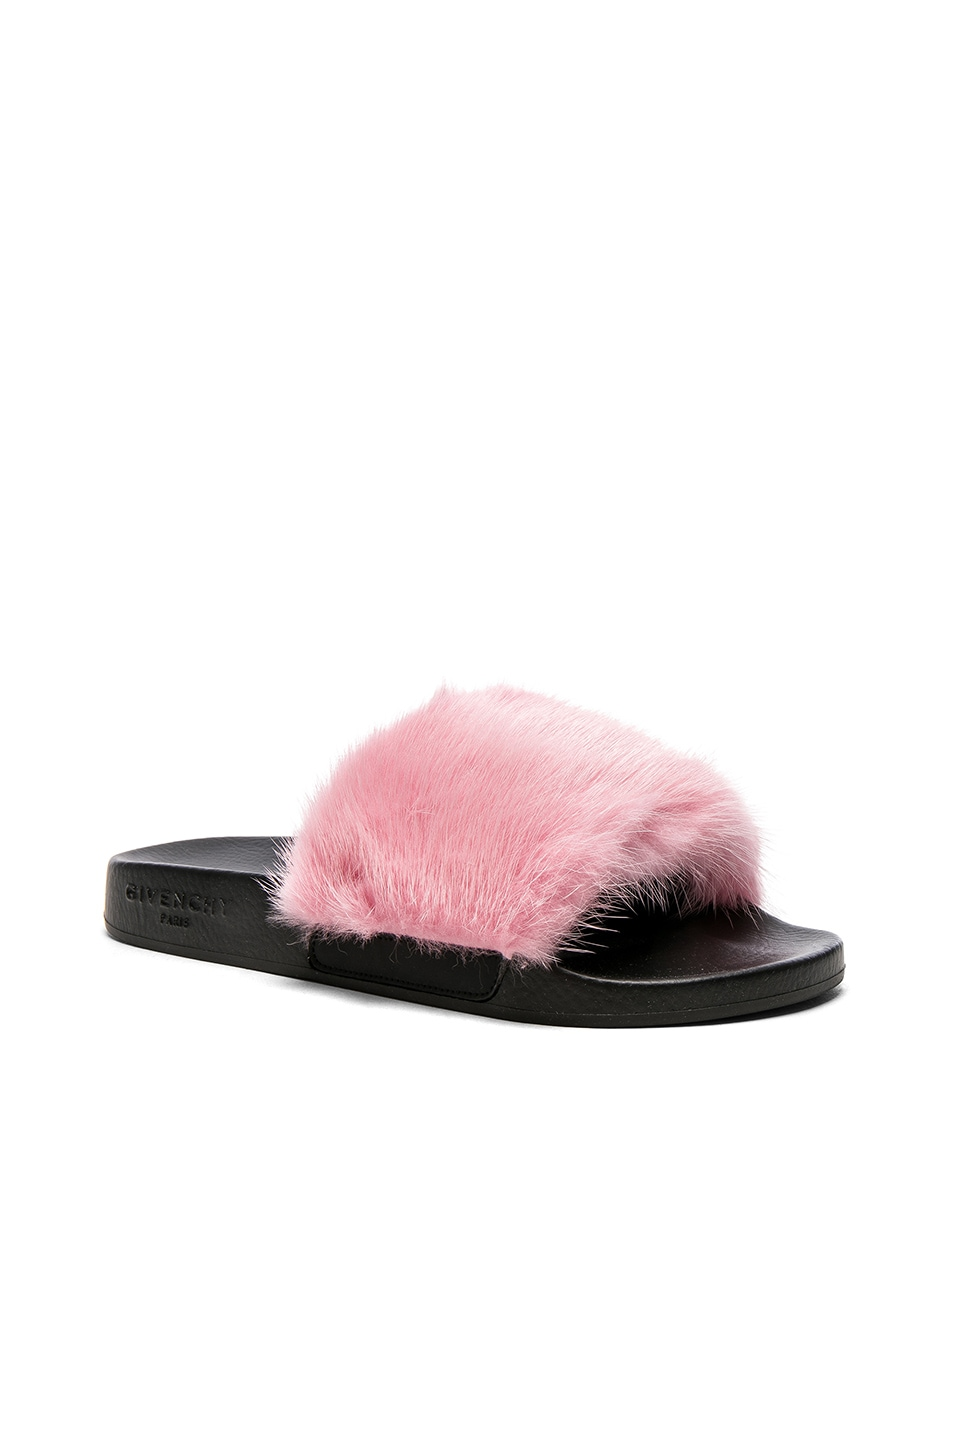 Image 2 of Givenchy Mink Fur Slides in Bright Pink